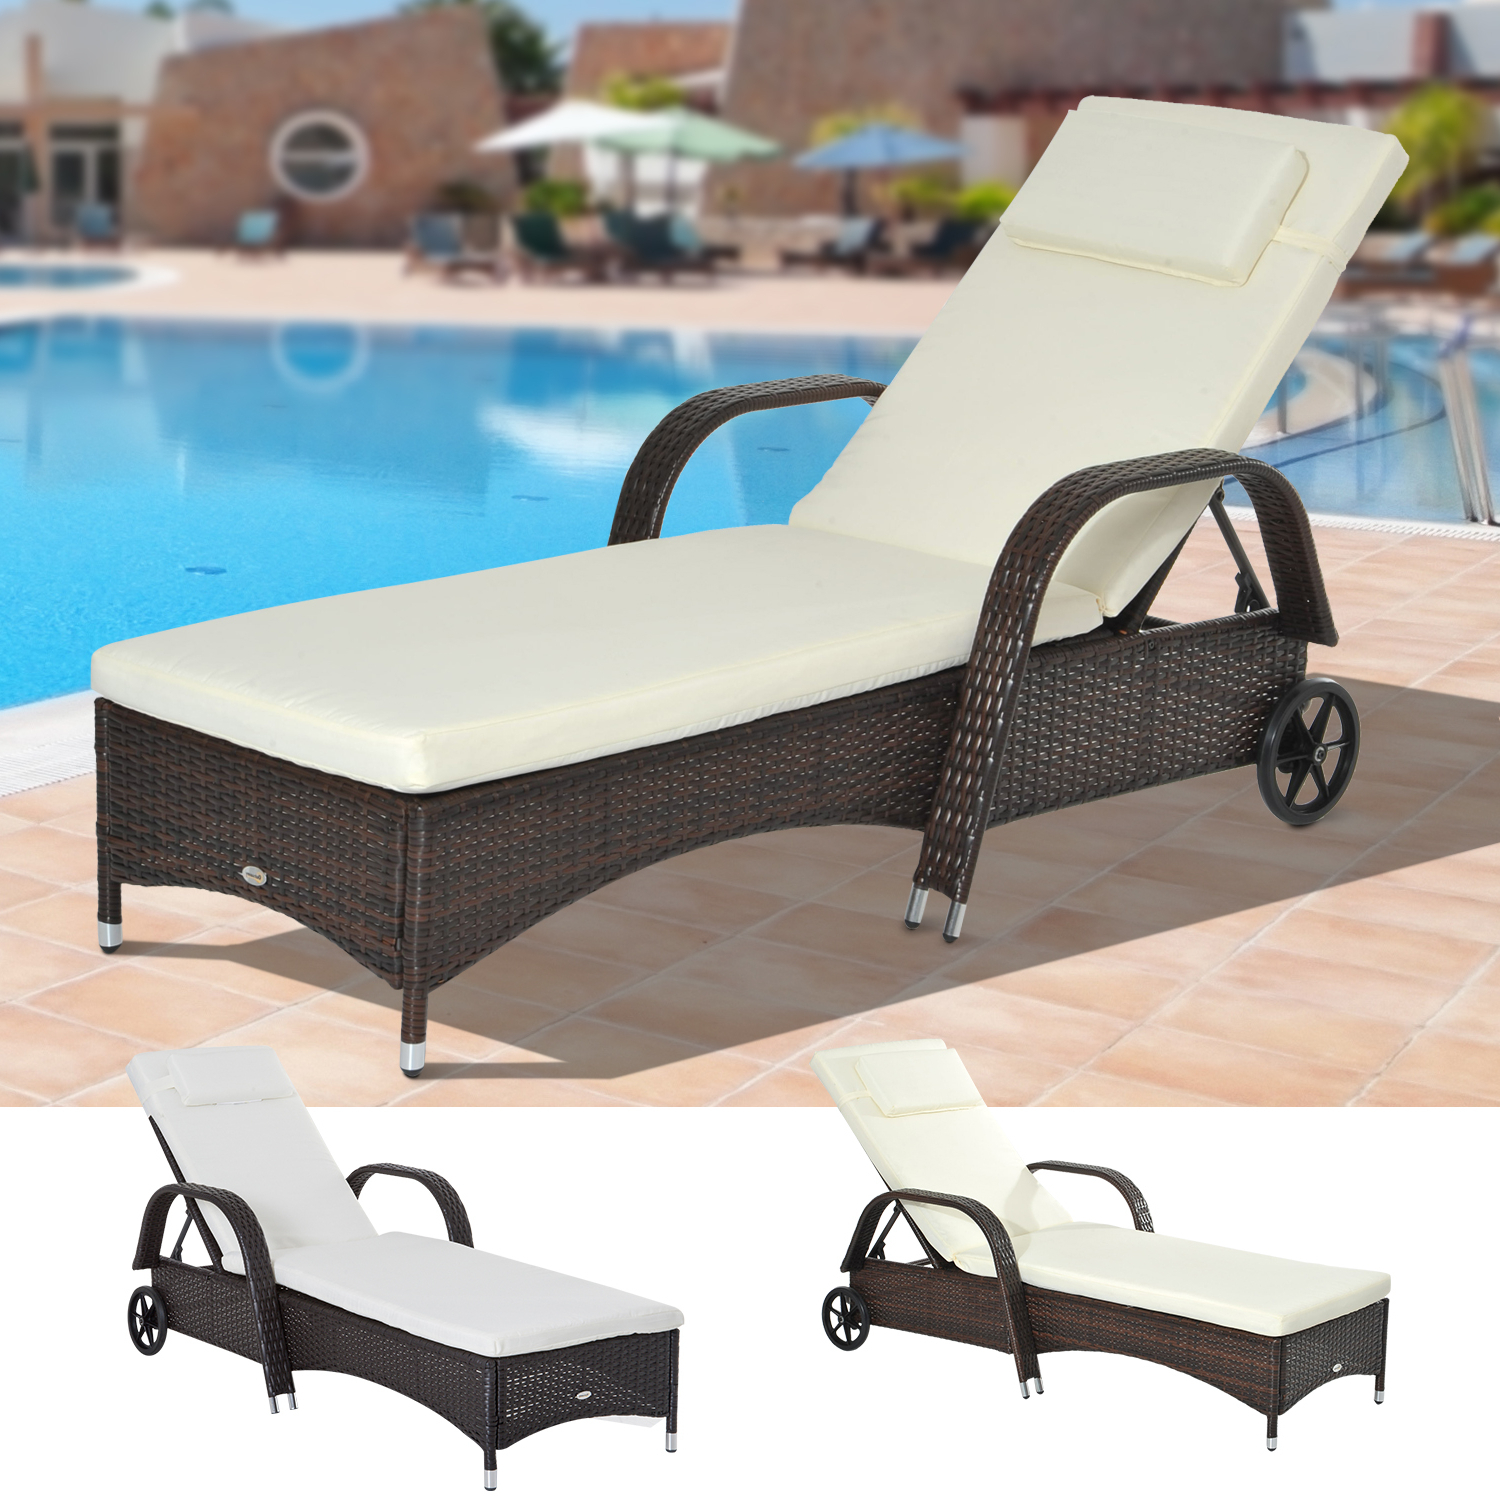 Plastic Chaise Lounges W/ Wheels With Favorite Details About Outdoor Rattan Wicker Chaise Lounge Beach Poolside Adjustable Sofa Chair W/wheel (View 17 of 25)